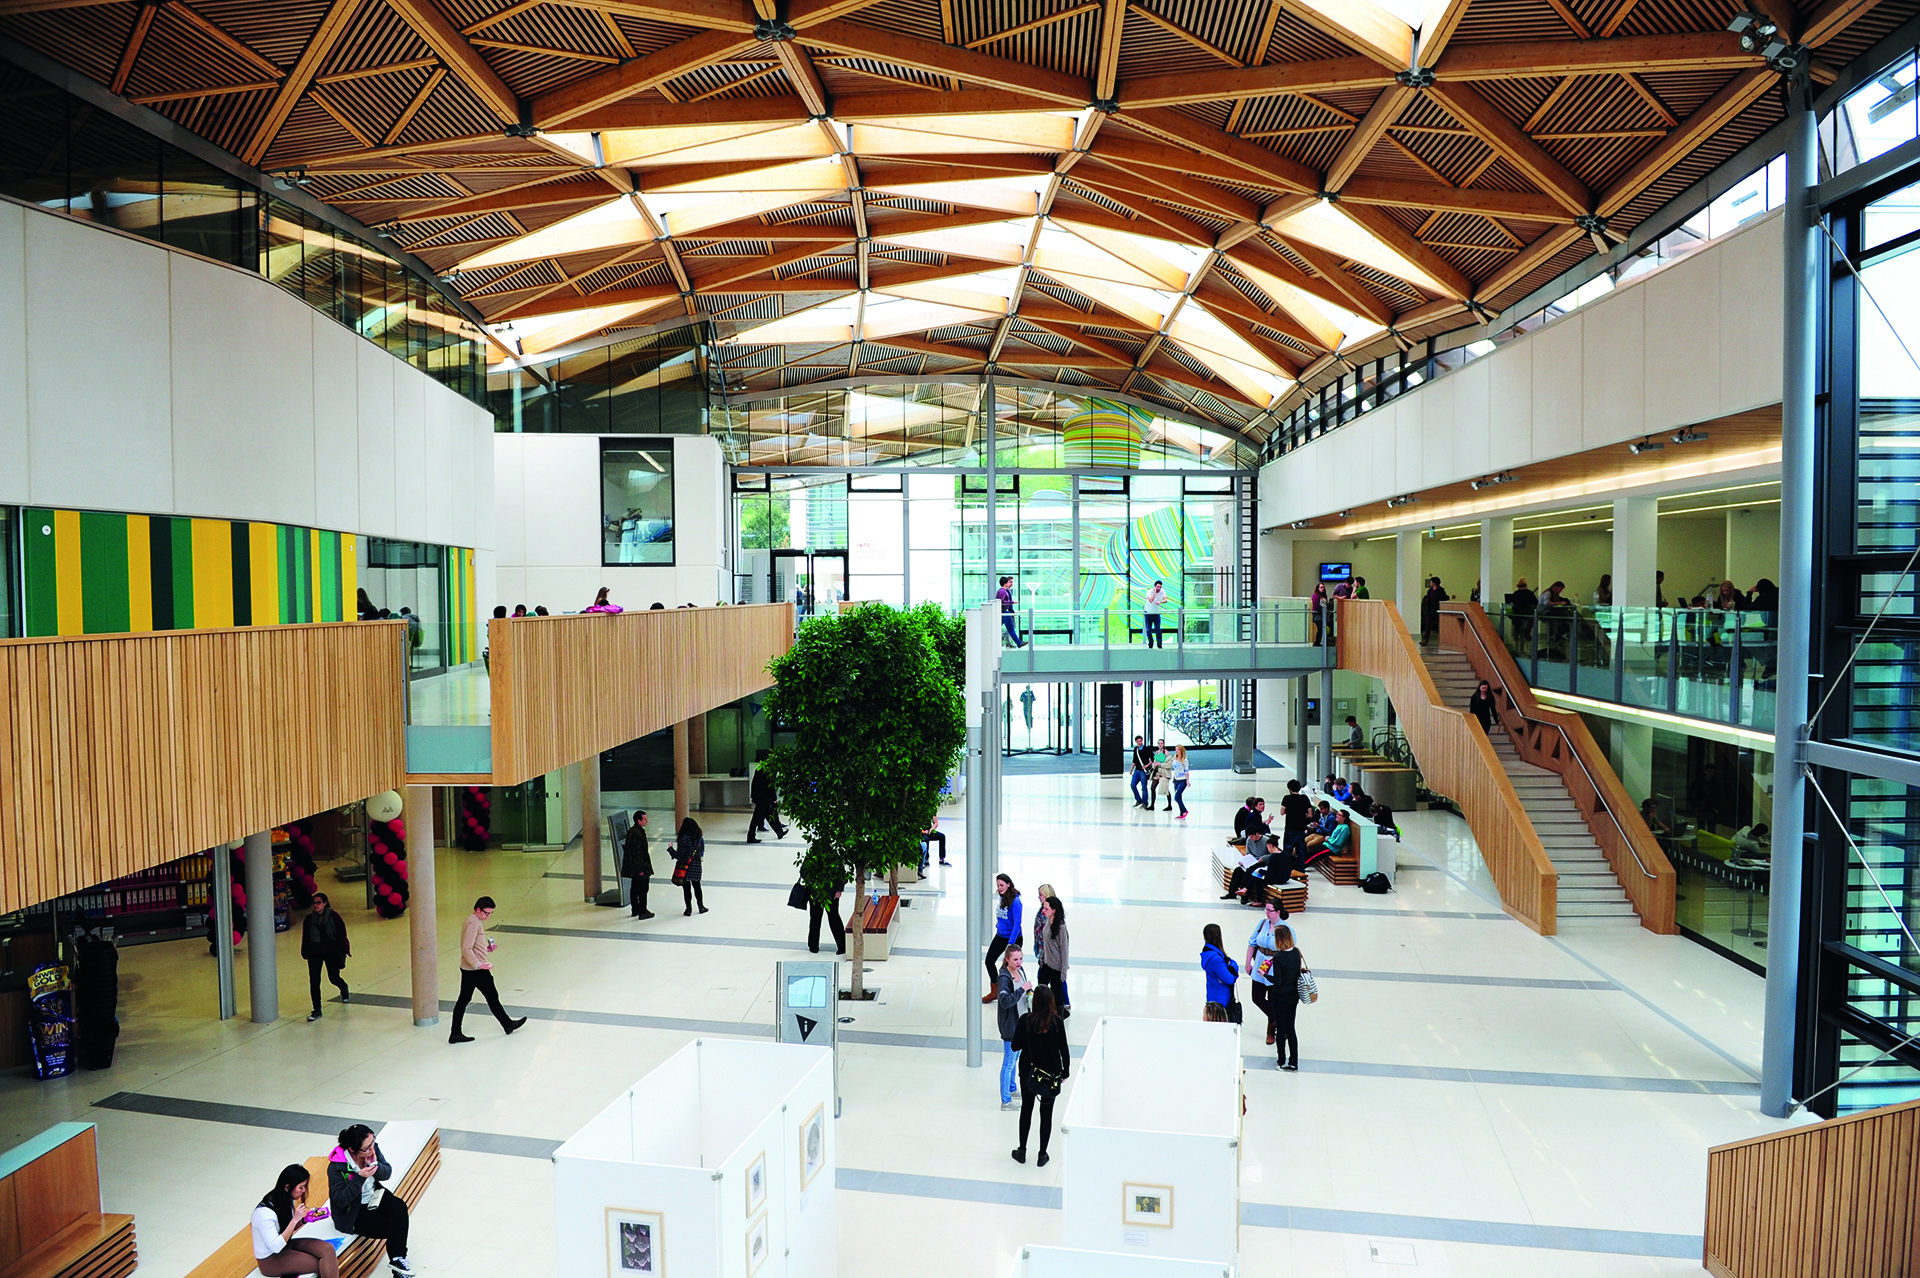 Interior view of The Forum at University of Exeter